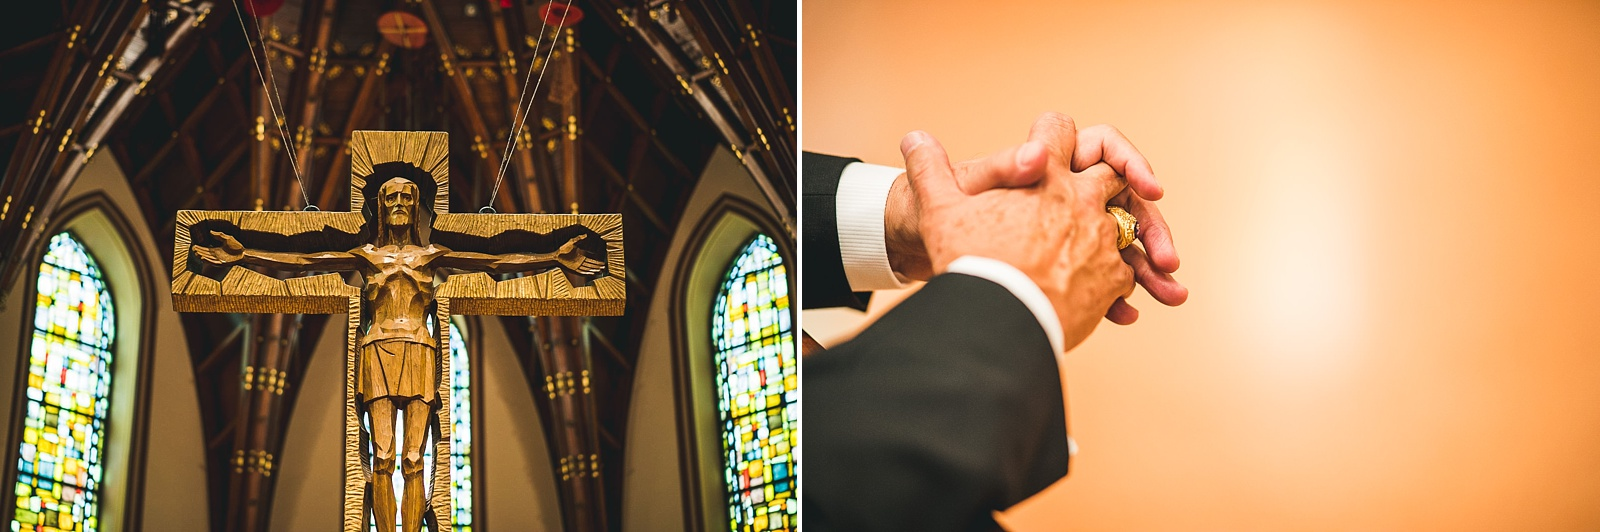 36 church wedding details - Hilton Chicago Wedding Photographer // Sarah + Aaron